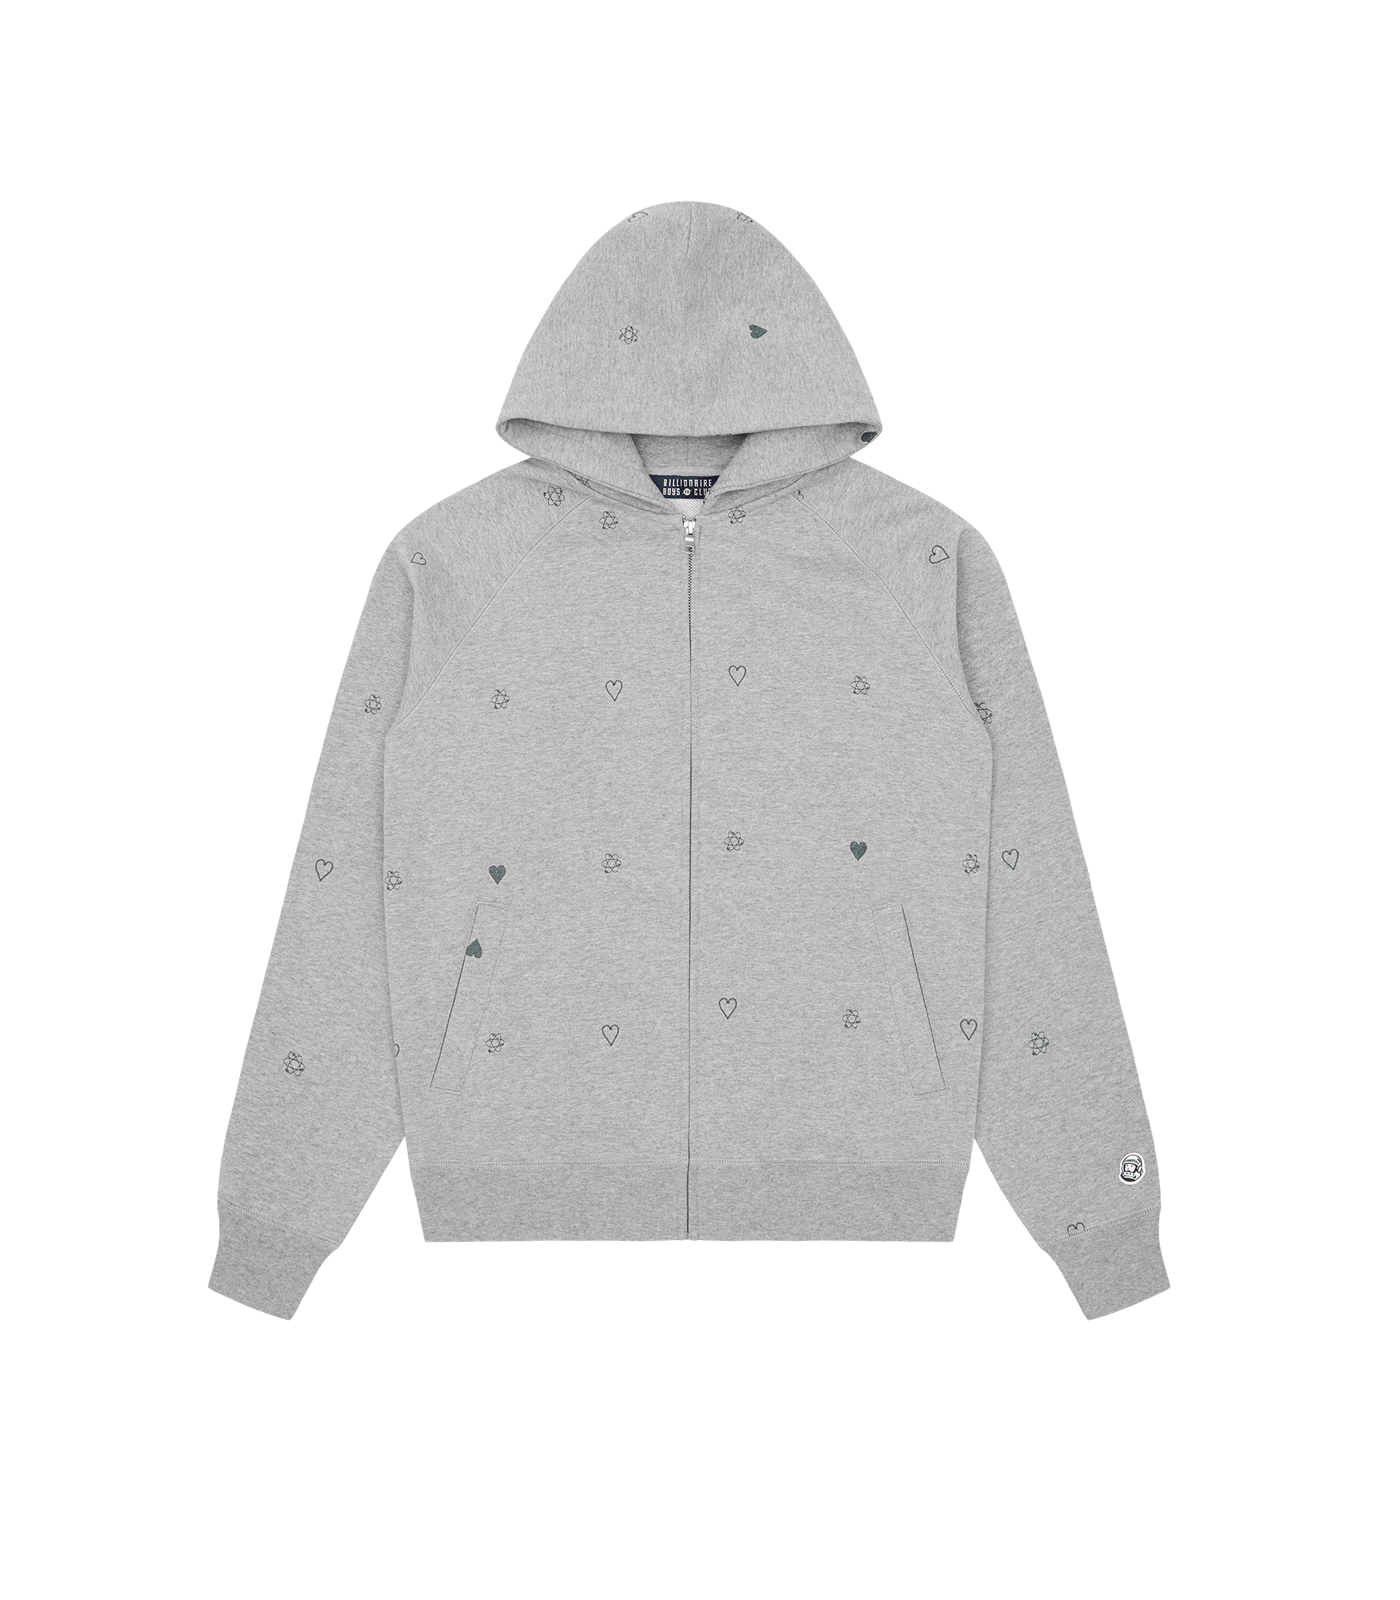 HEART & MIND MONOGRAM EMBROIDERED ZIP THROUGH HOOD - GREY